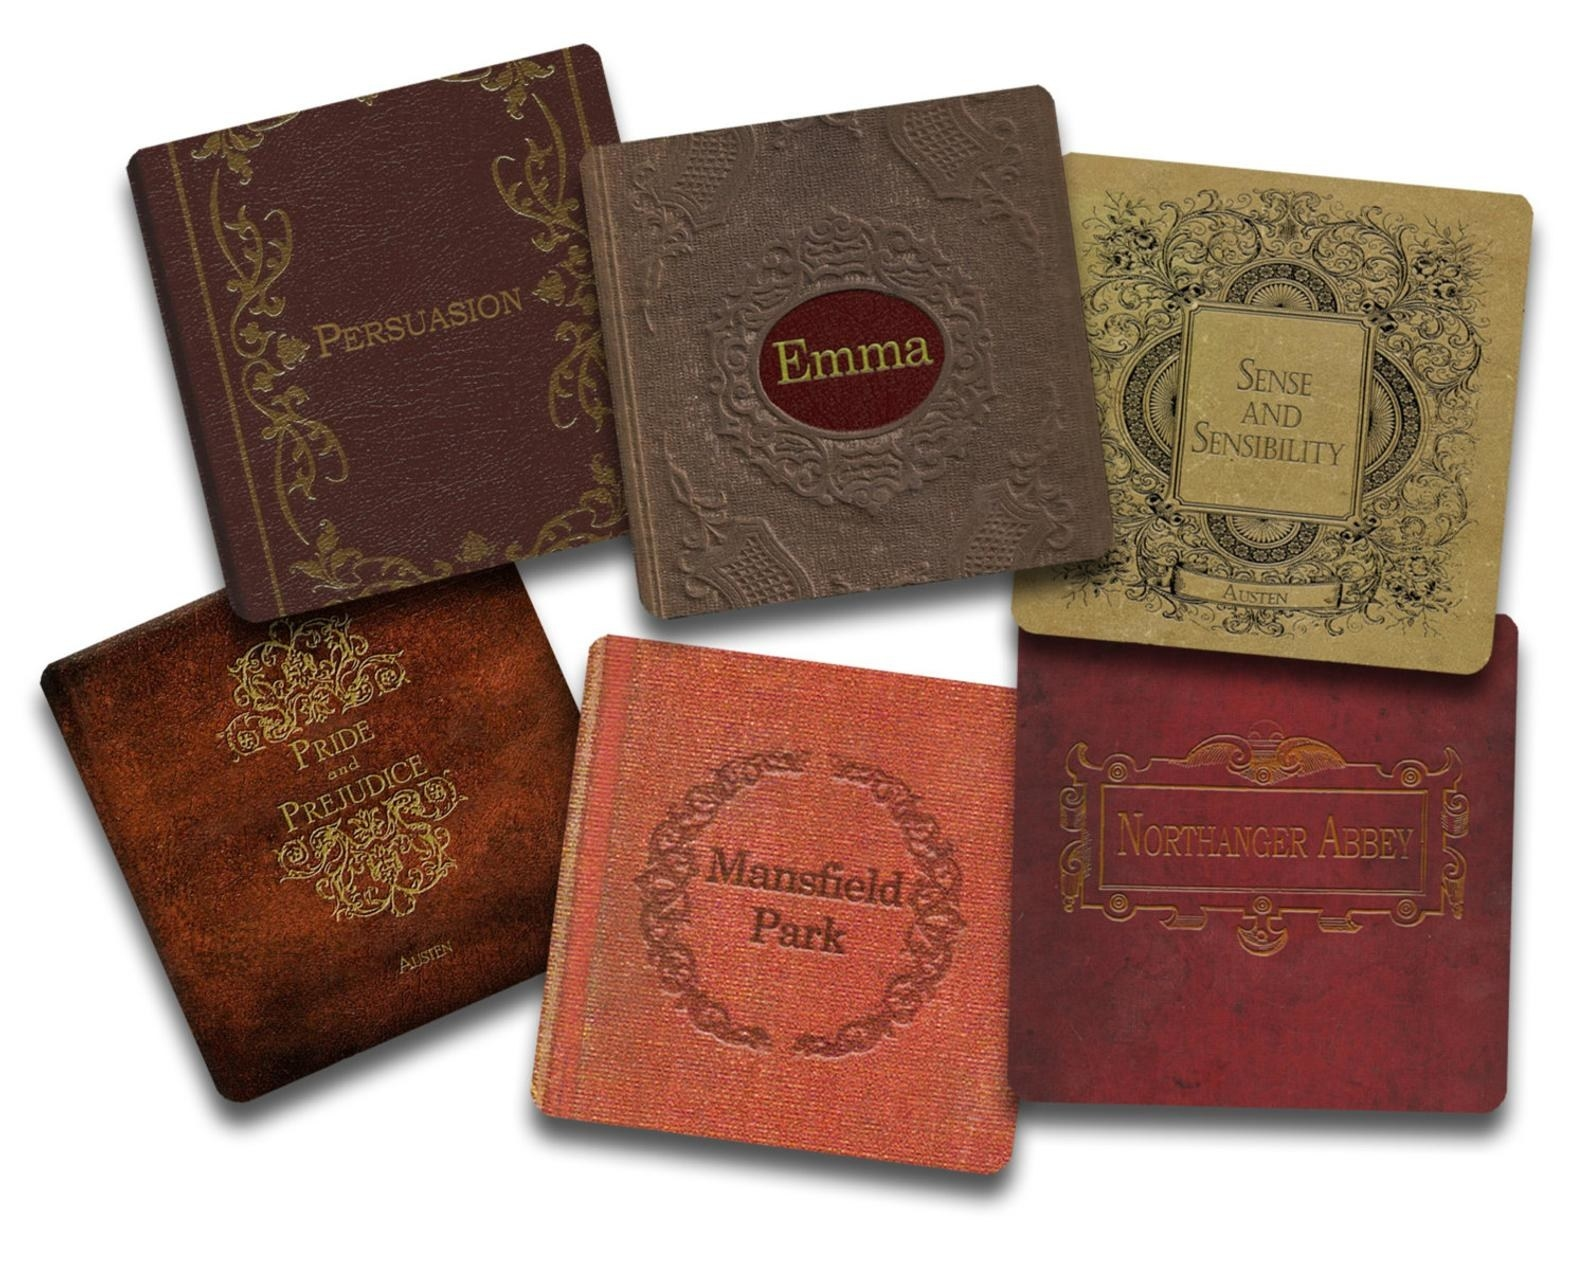 Six coasters in shades of brown and red with small designs with the titles Persuasion, Emma, Sense and Sensibility, Pride and Prejudice, Mansfield Park, and Northanger Abbey on them.